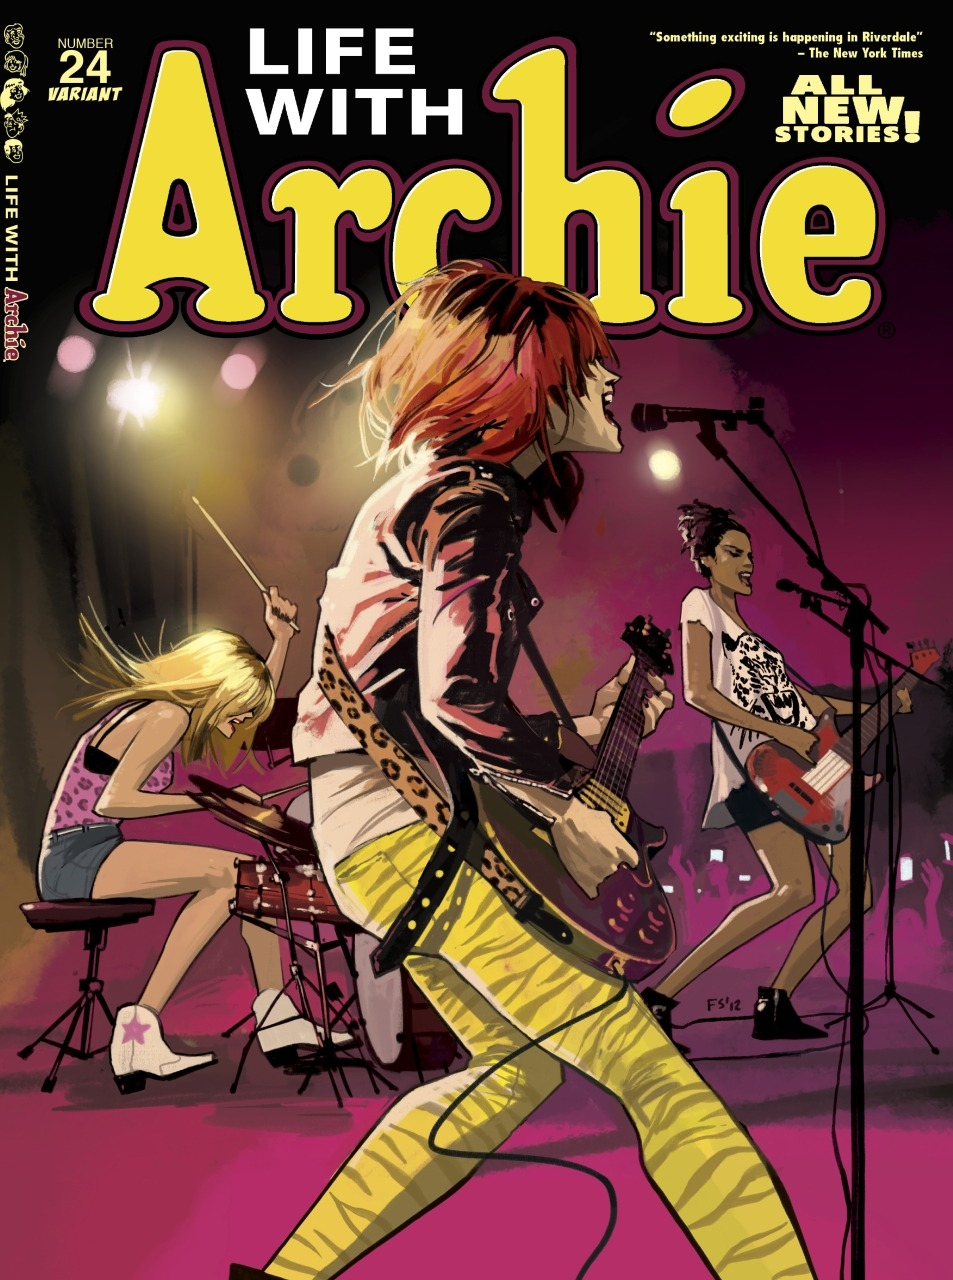 comicbooks:  Life With Archie #24 cover art by Fiona Staples